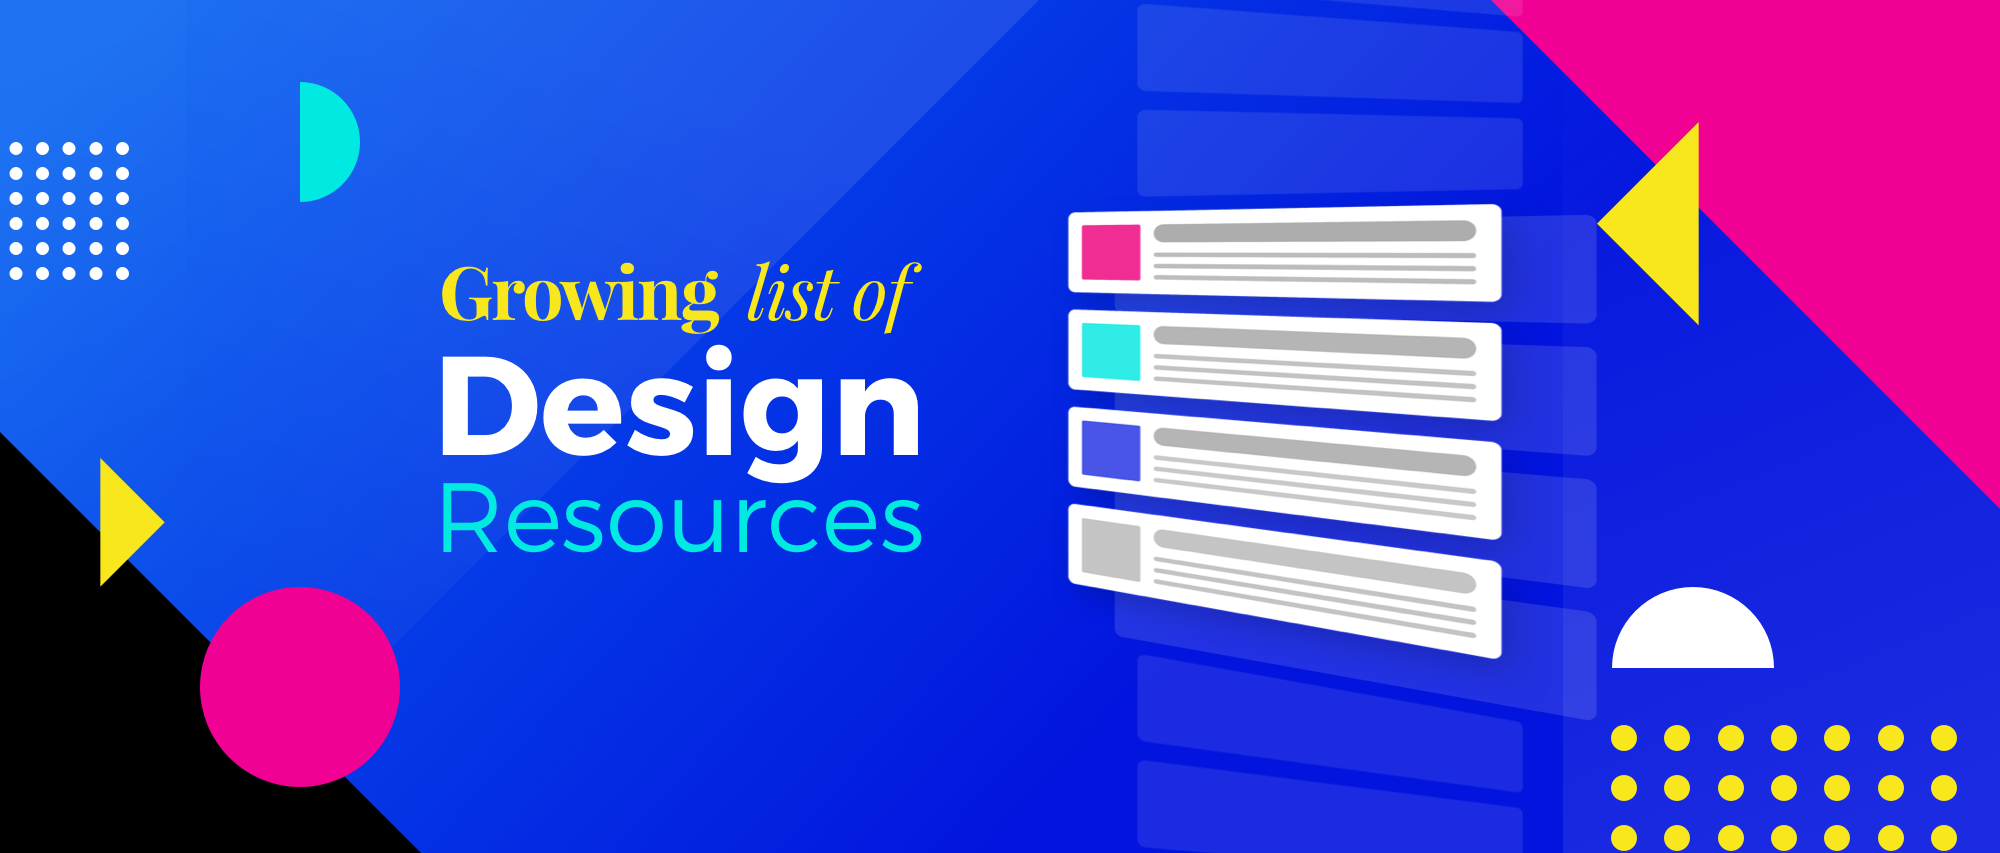 Growing List of Design Resources - Caio Calderari - Medium